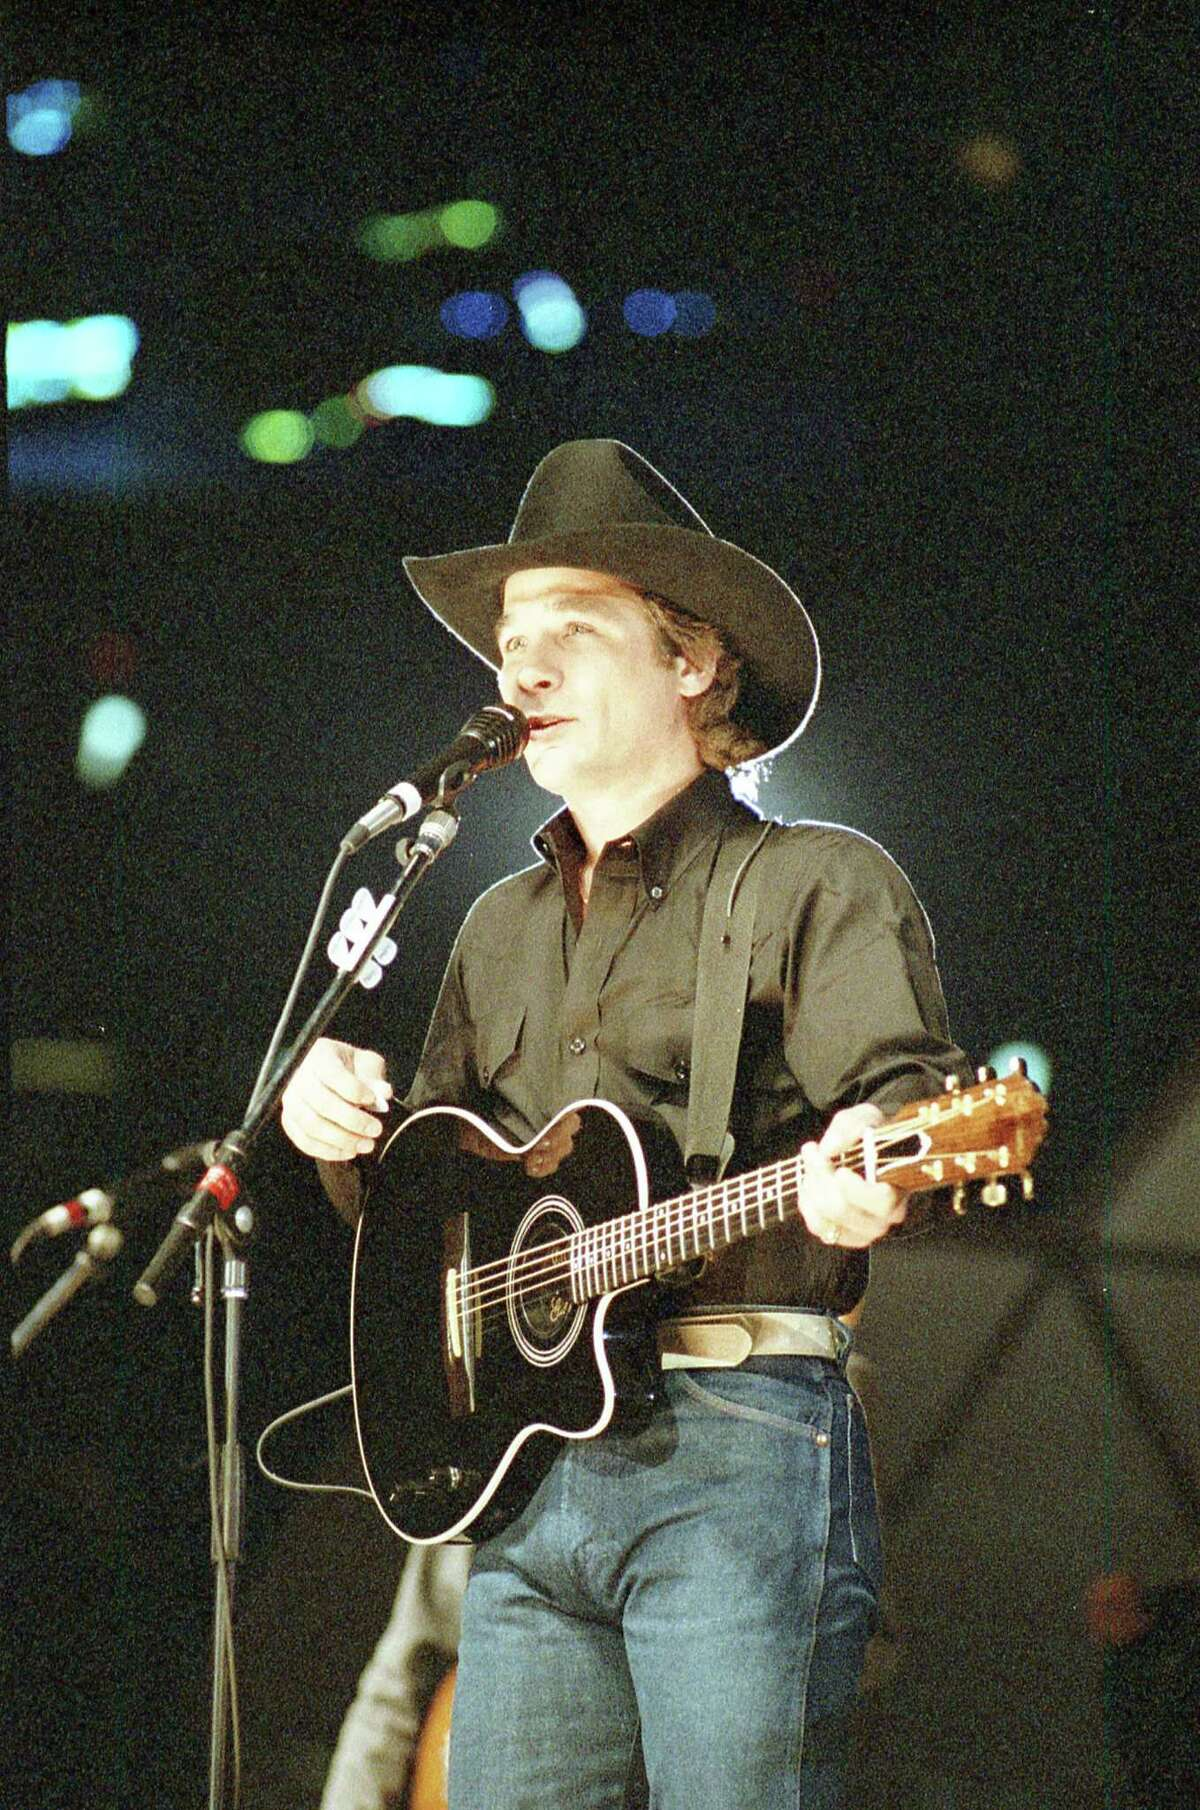 Katy native Clint Black, who used to sing for free at picnic tables in Bear Creek Park, proved his star power Sunday, Feb. 18, 1990, with a record sellout crowd in the Astrodome.